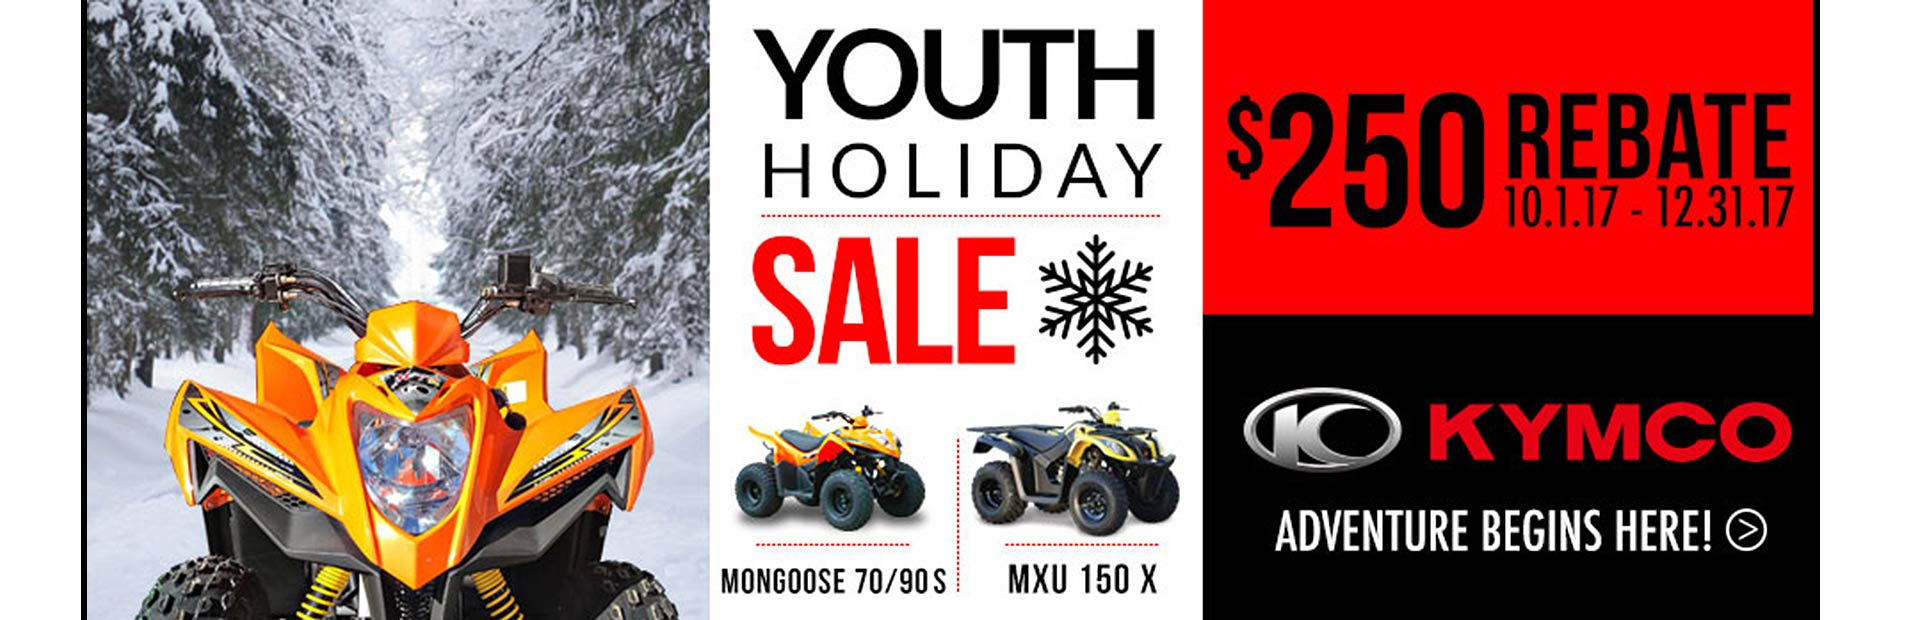 KYMCO: Youth ATV Holiday Season Sales Program